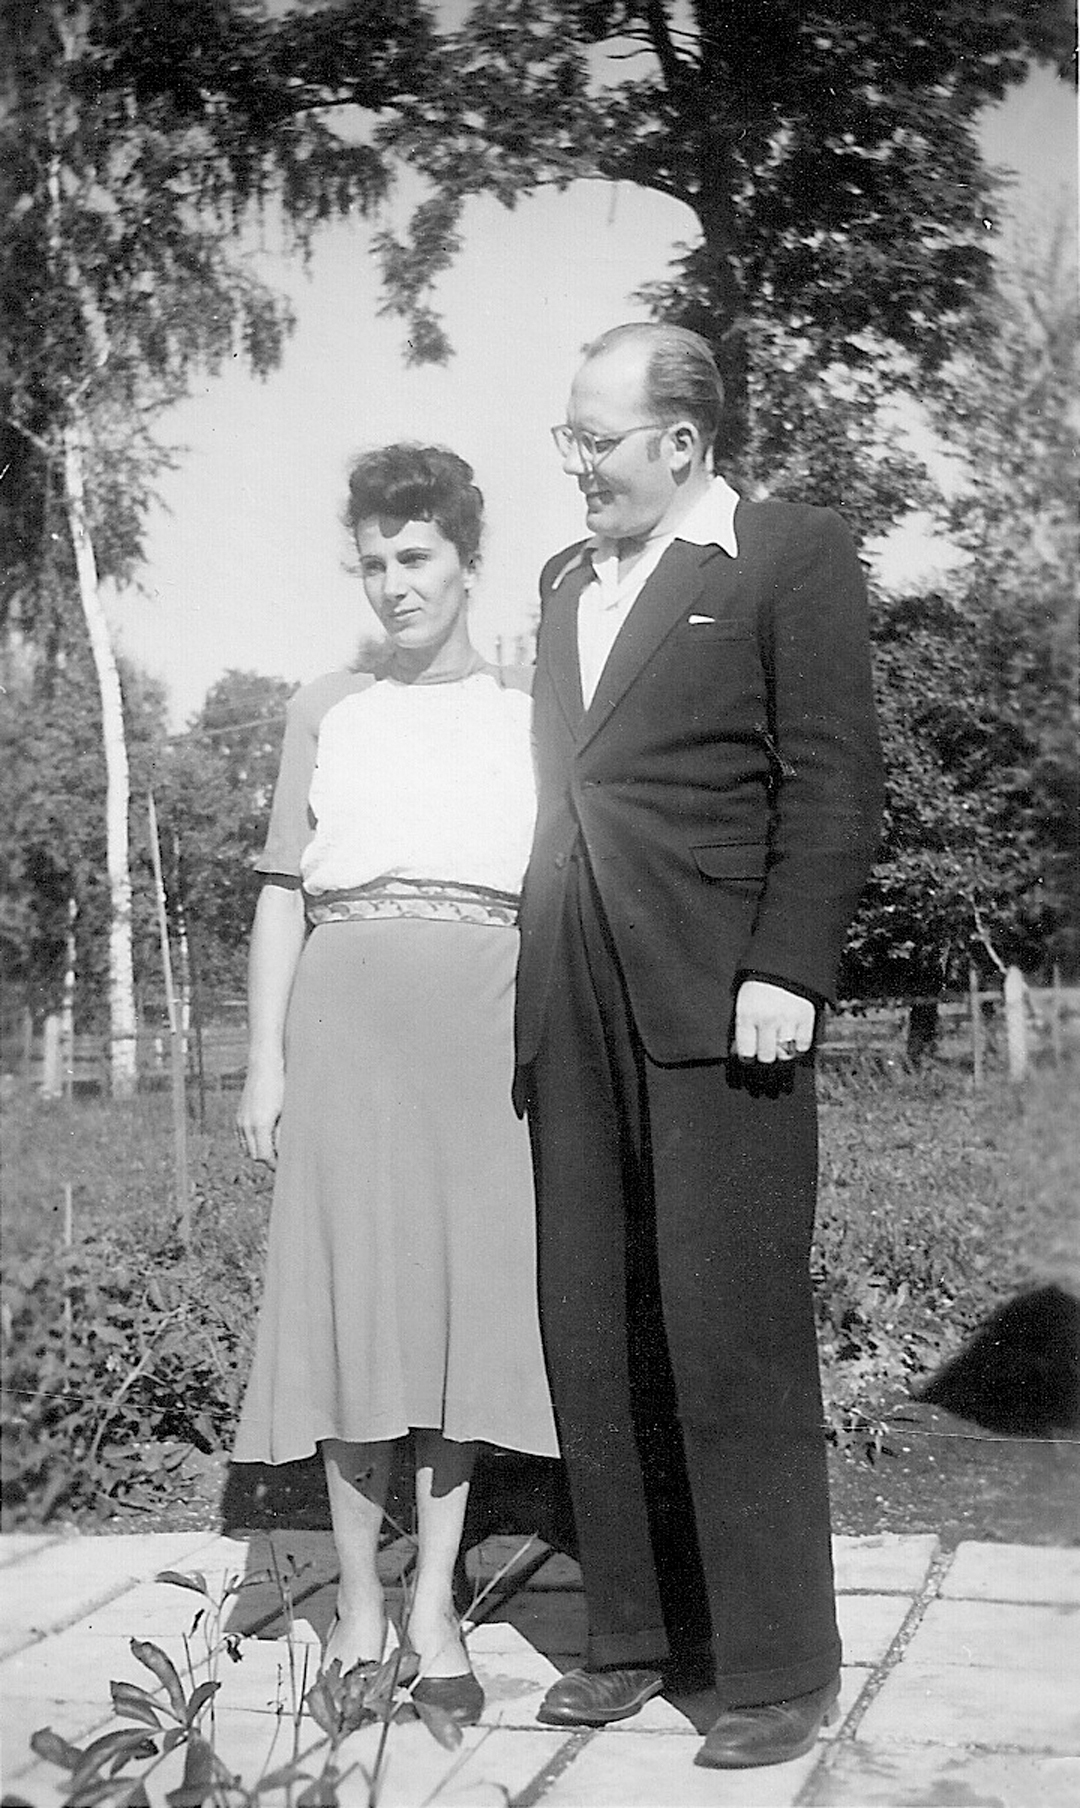 Peter and Johanna shortly after immigrating to America, 1953.